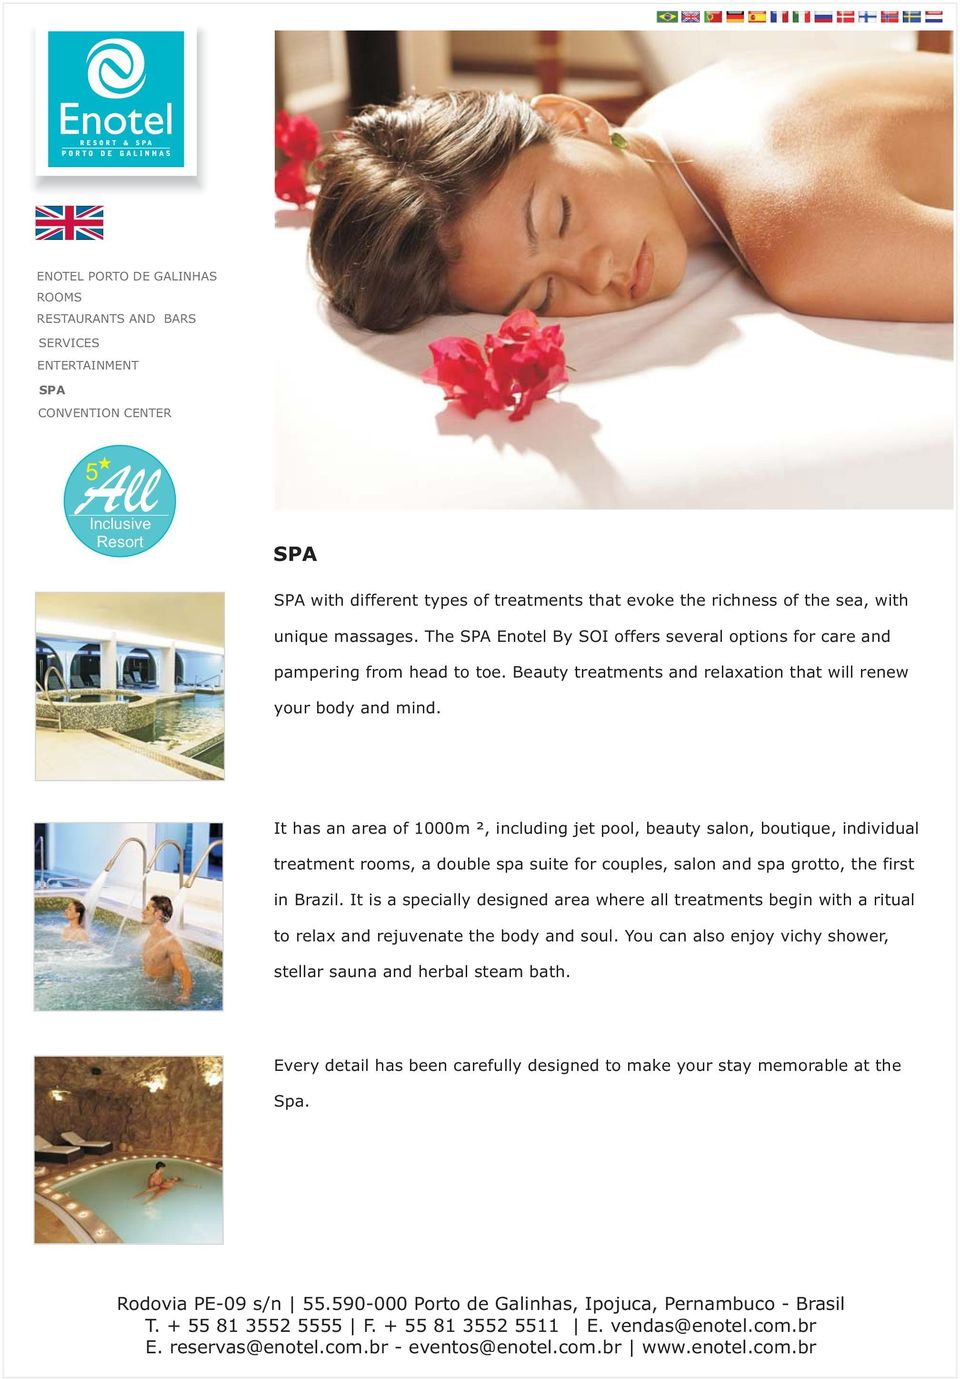 It has an area of 1000m ², including jet pool, beauty salon, boutique, individual treatment rooms, a double spa suite for couples, salon and spa grotto, the first in Brazil.